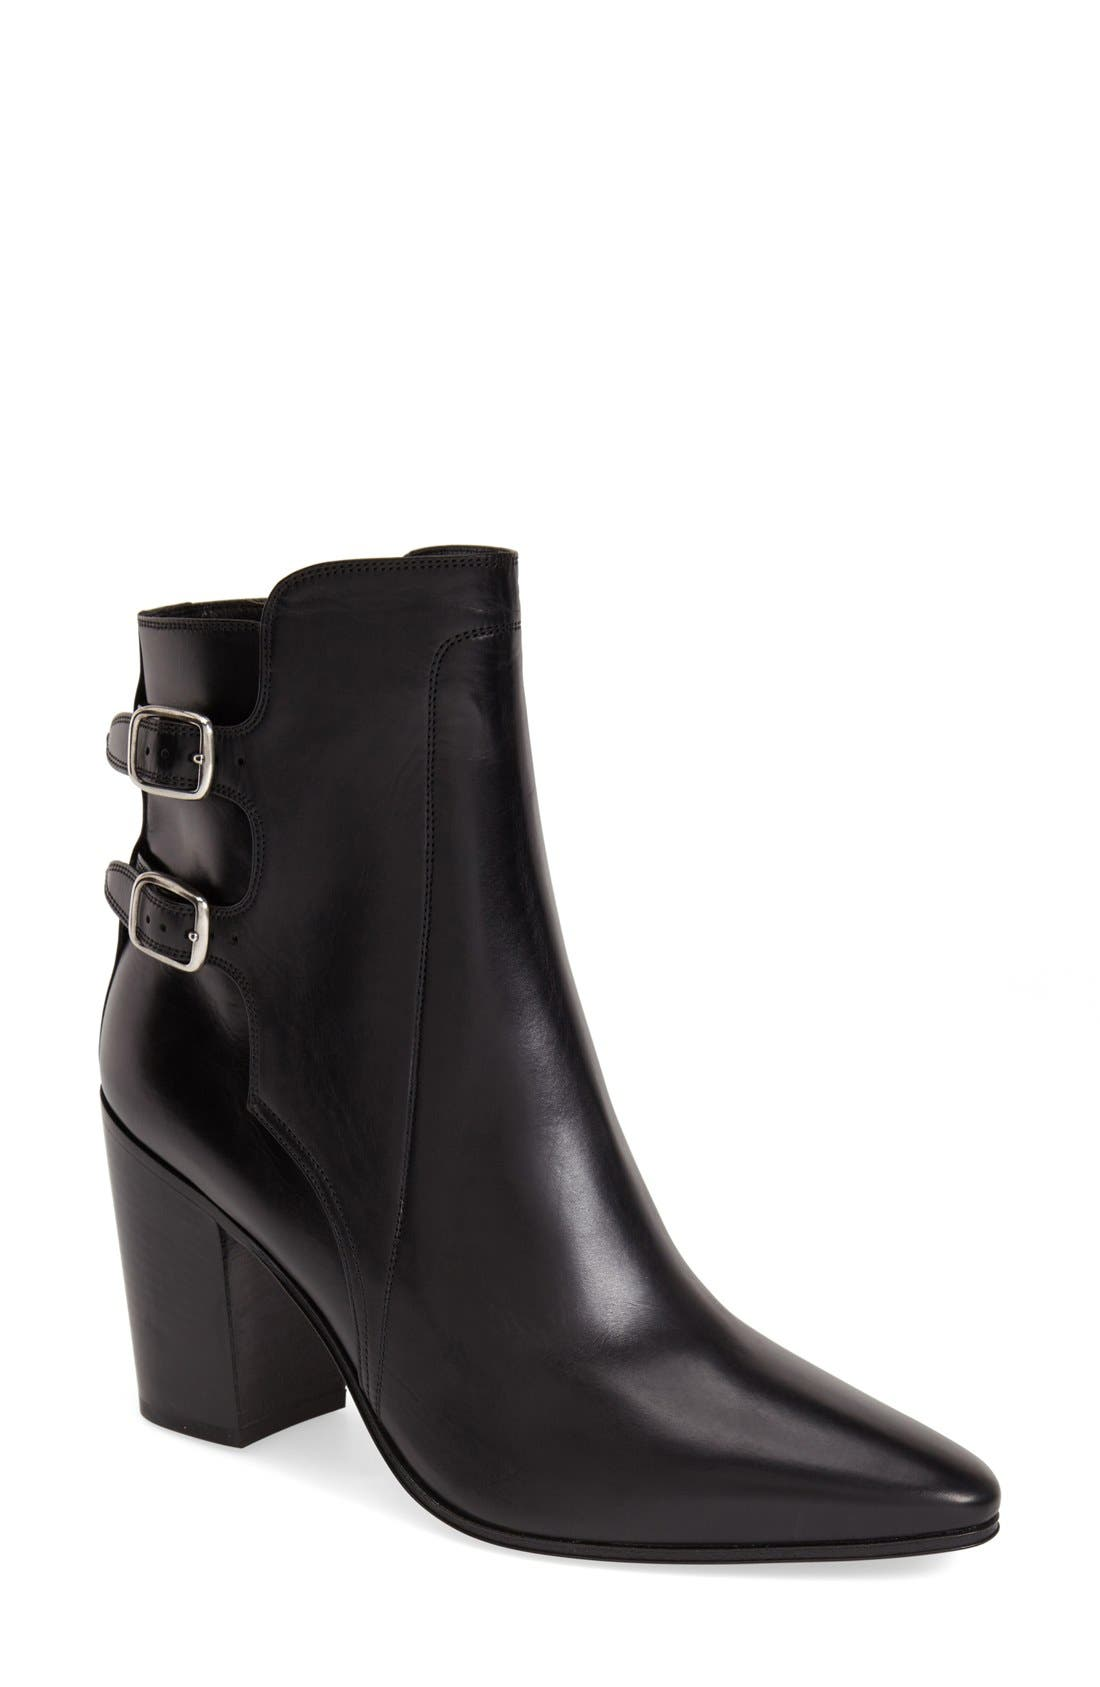 Main Image - Saint Laurent Pointy Toe Ankle Boot (Women)